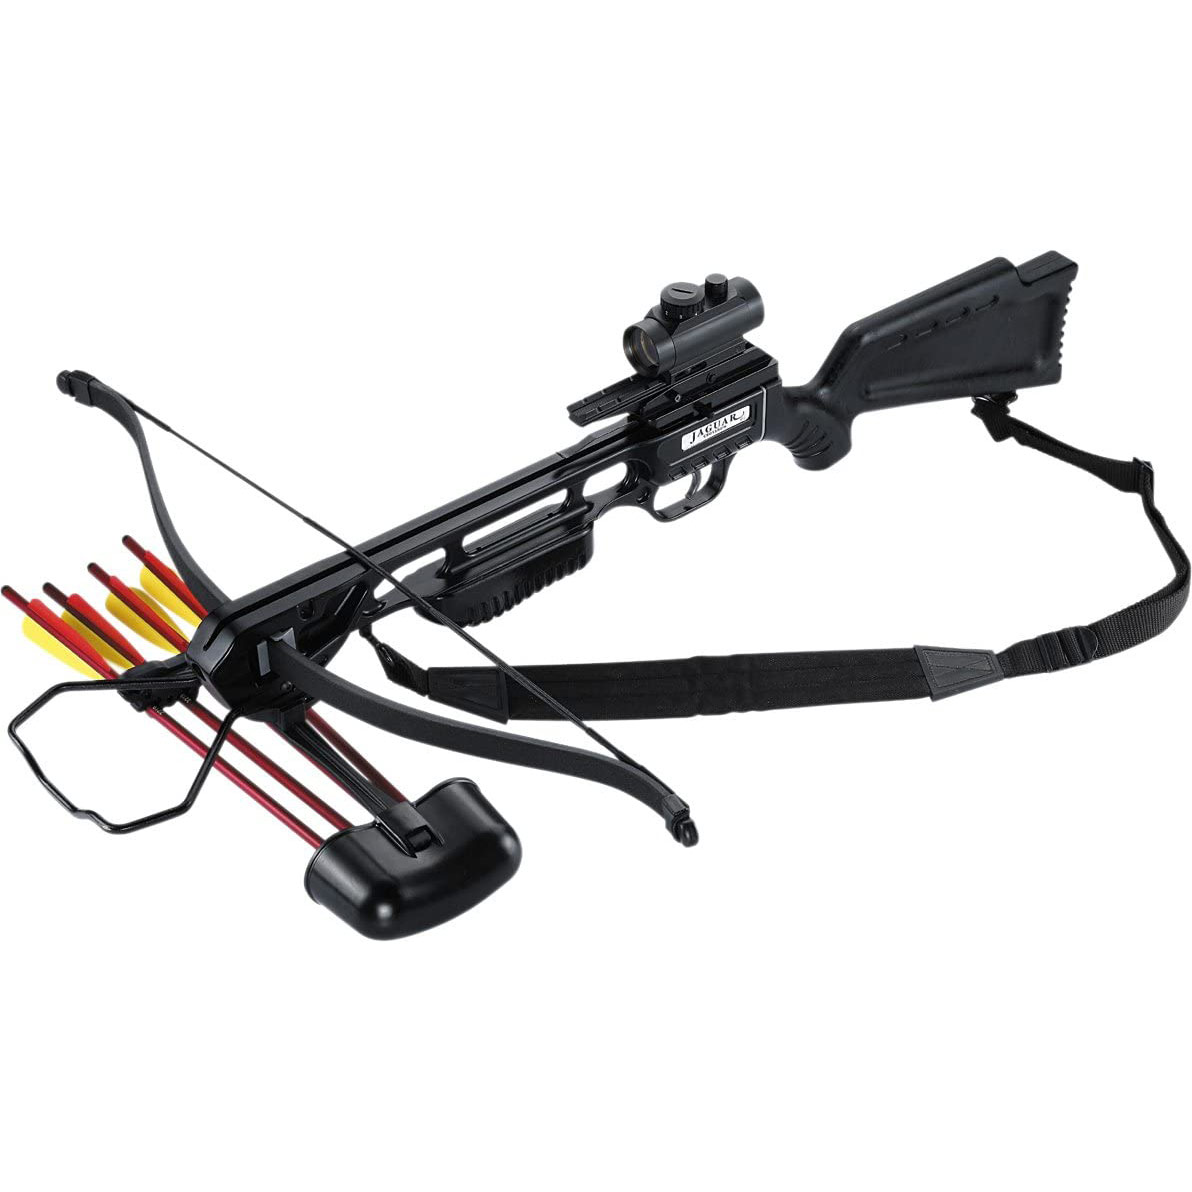 Jaguar Crossbow Review 2021